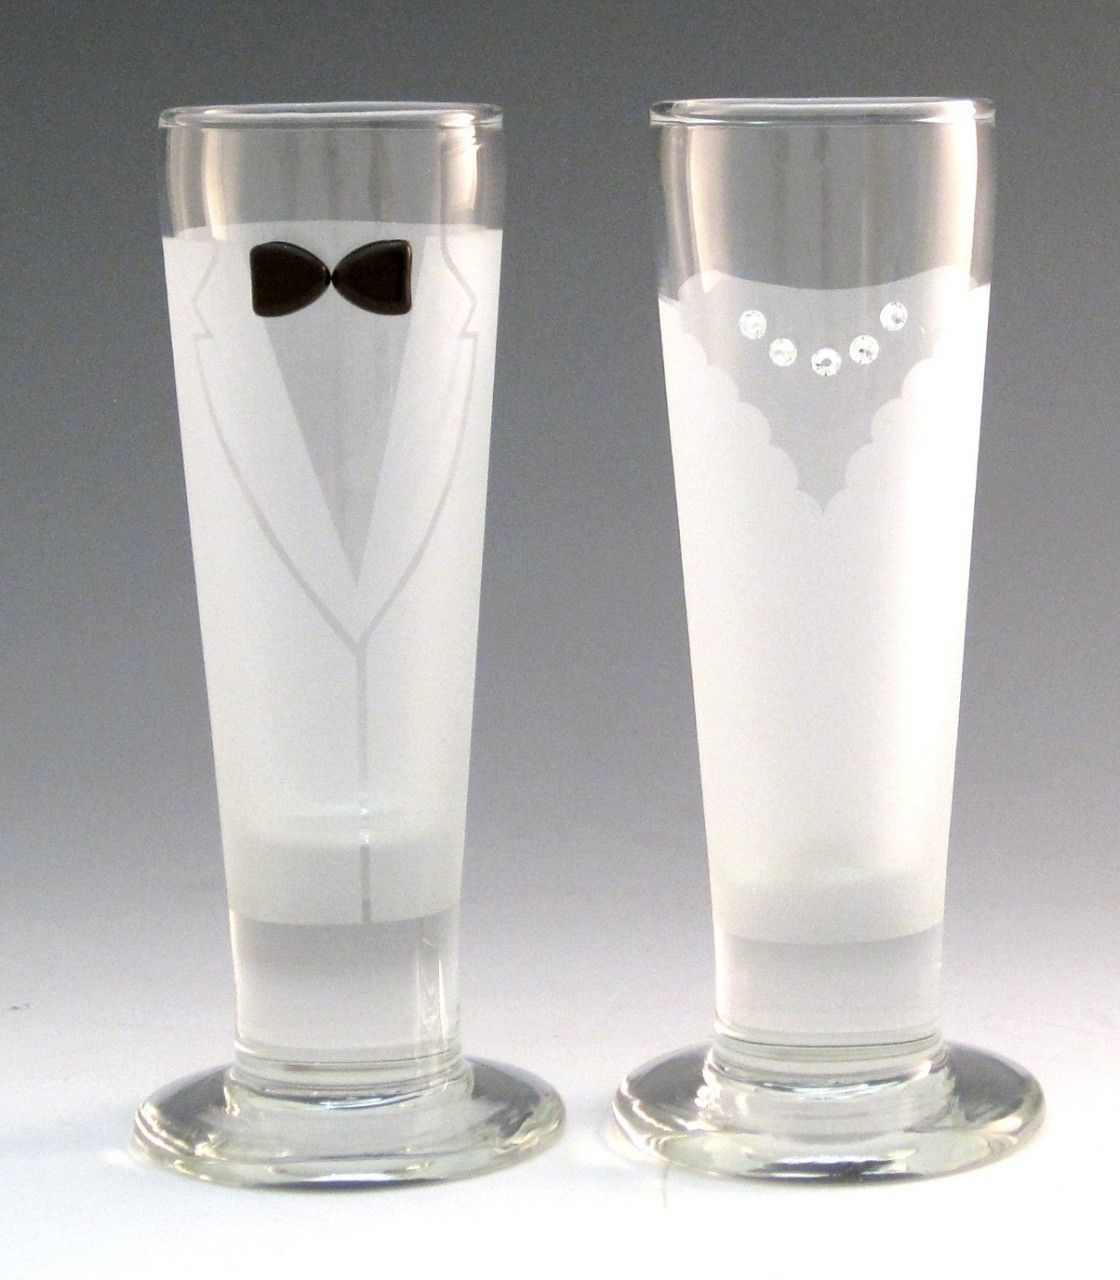 Totally Awesome Goods - Hand-Decorated Shot Glasses, Bride and Groom, $22.00 (http://www.totallyawesomegoods.com/hand-decorated-shot-glasses-bride-and-groom/)